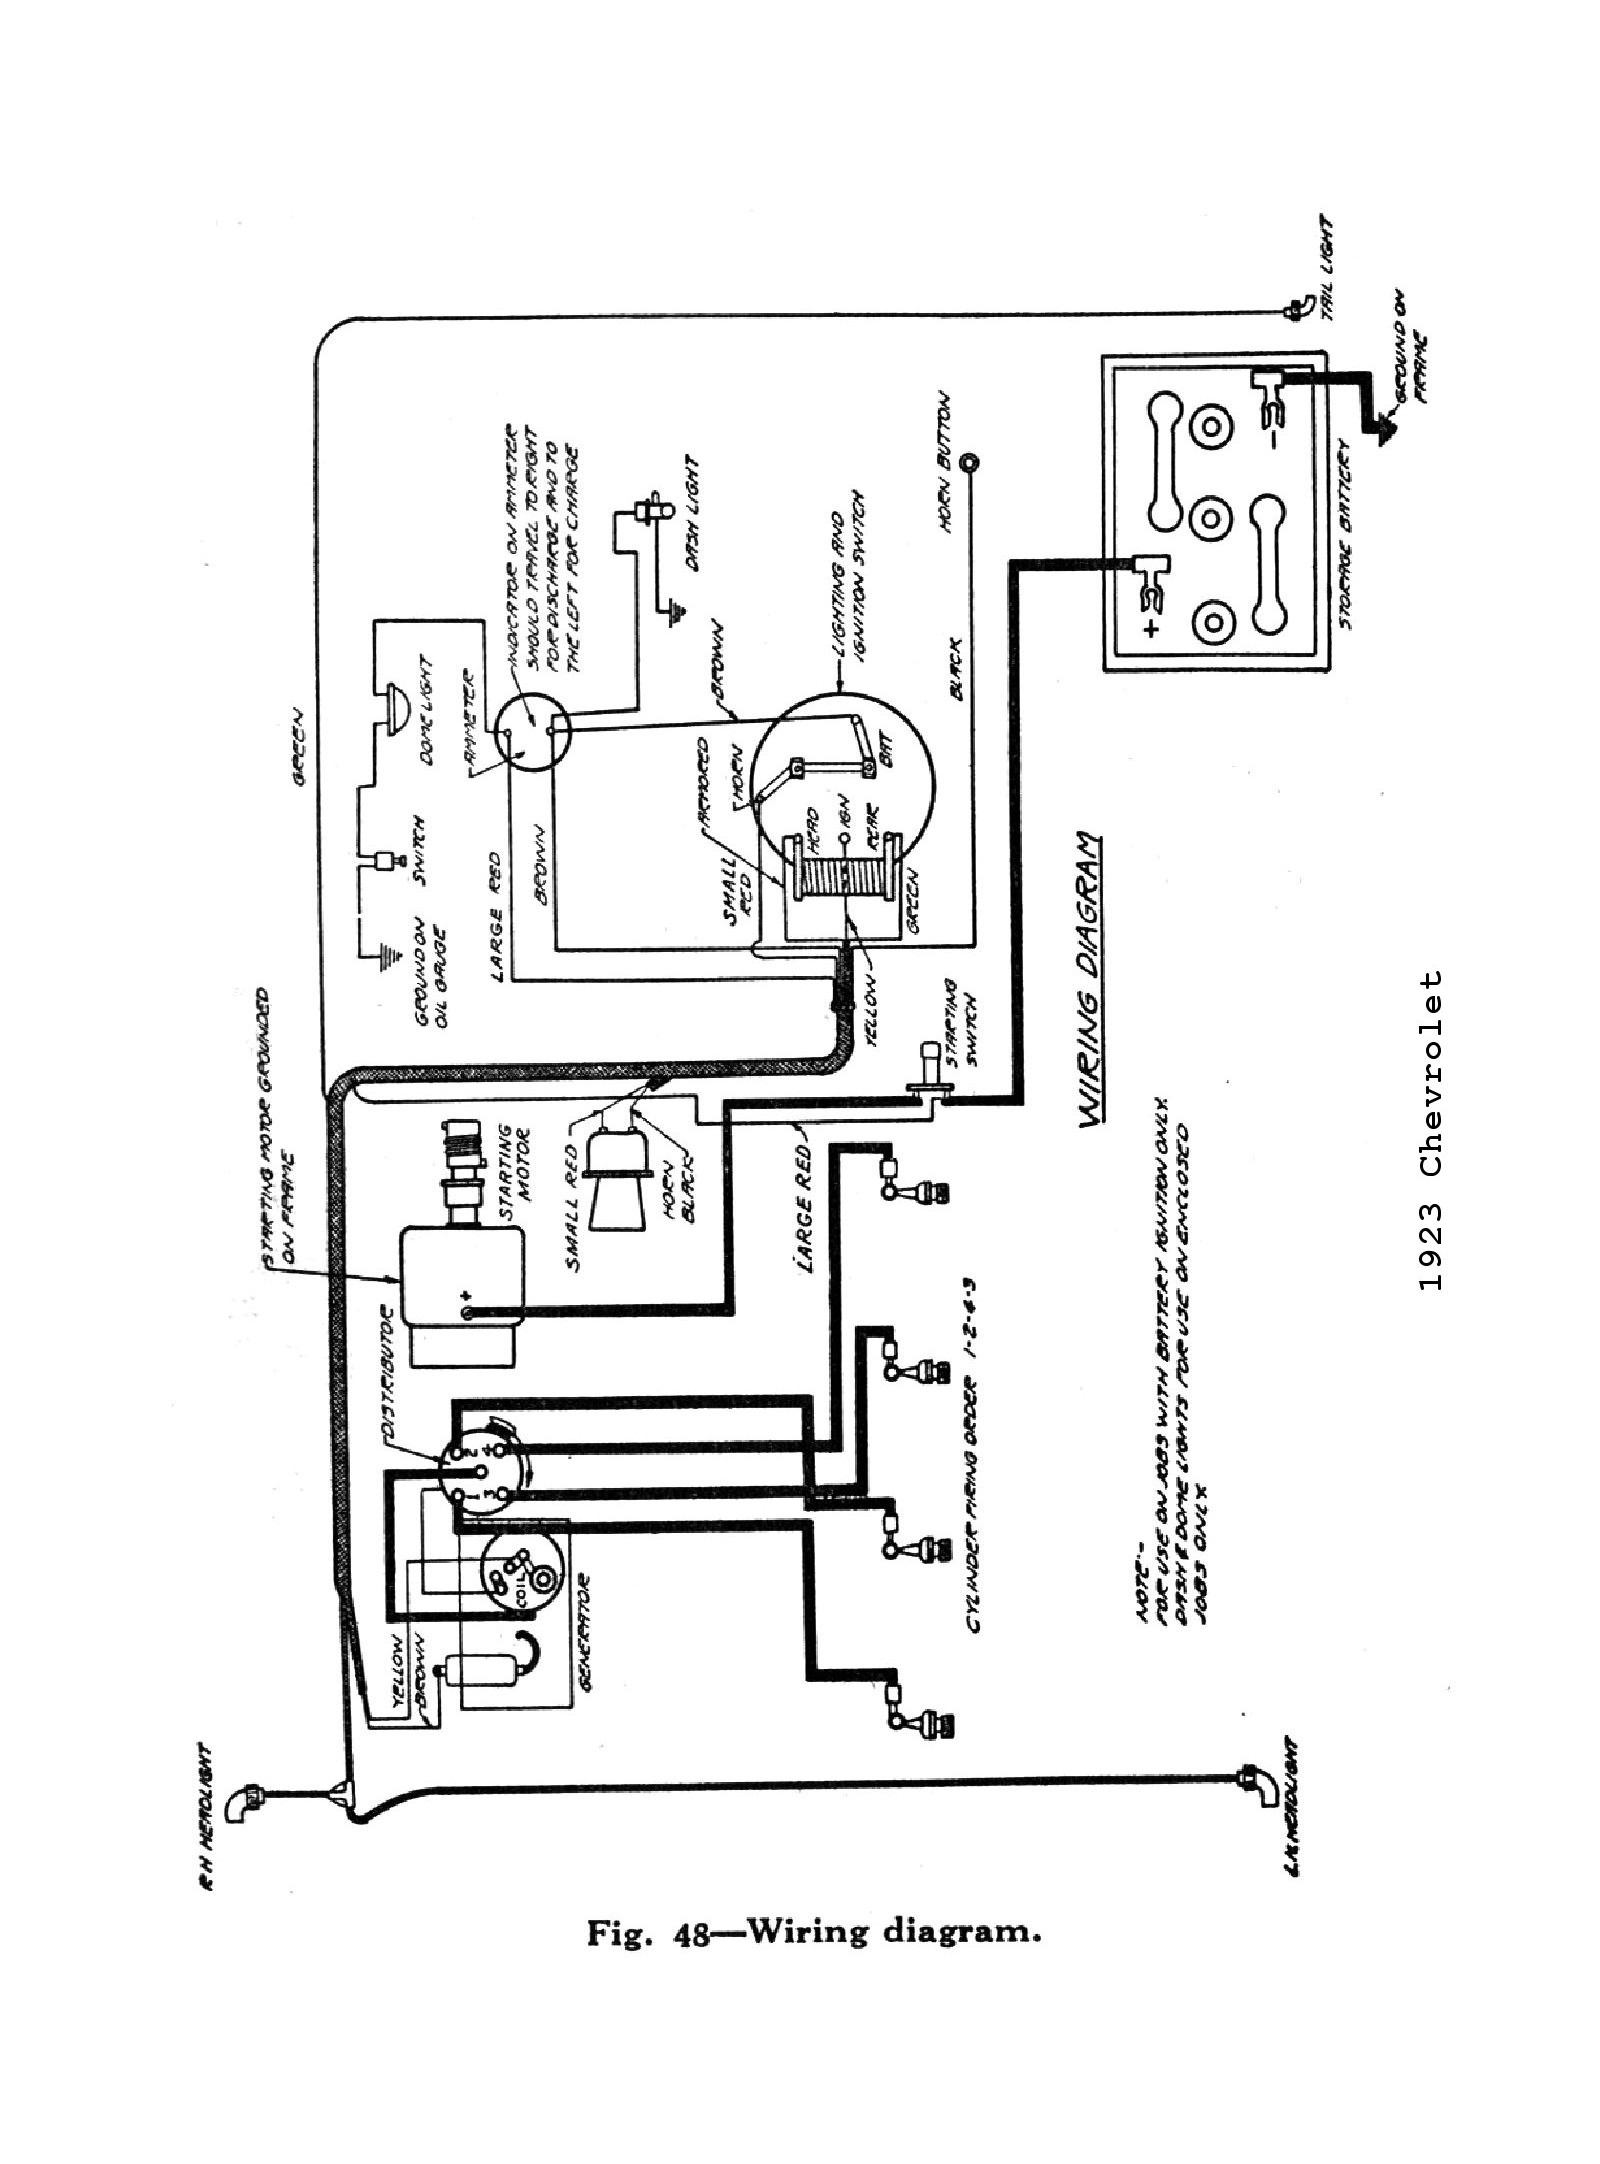 ignition circuit diagram for the 1948 52 buick all models wiring Chrysler Dodge Wiring Diagram